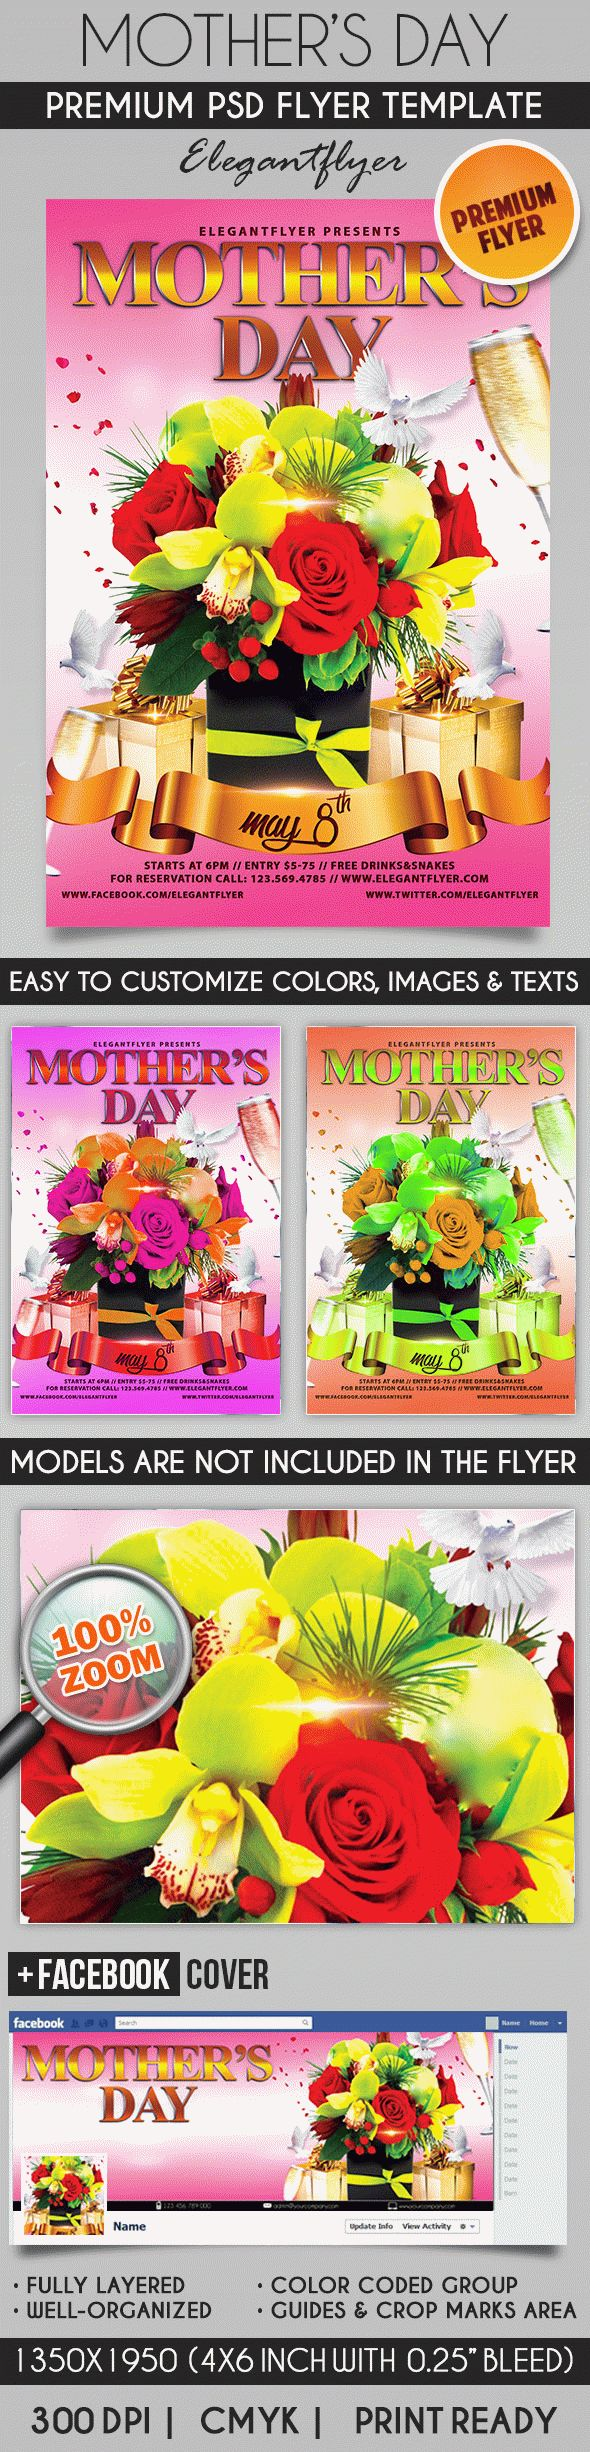 Mother Day Poster Template